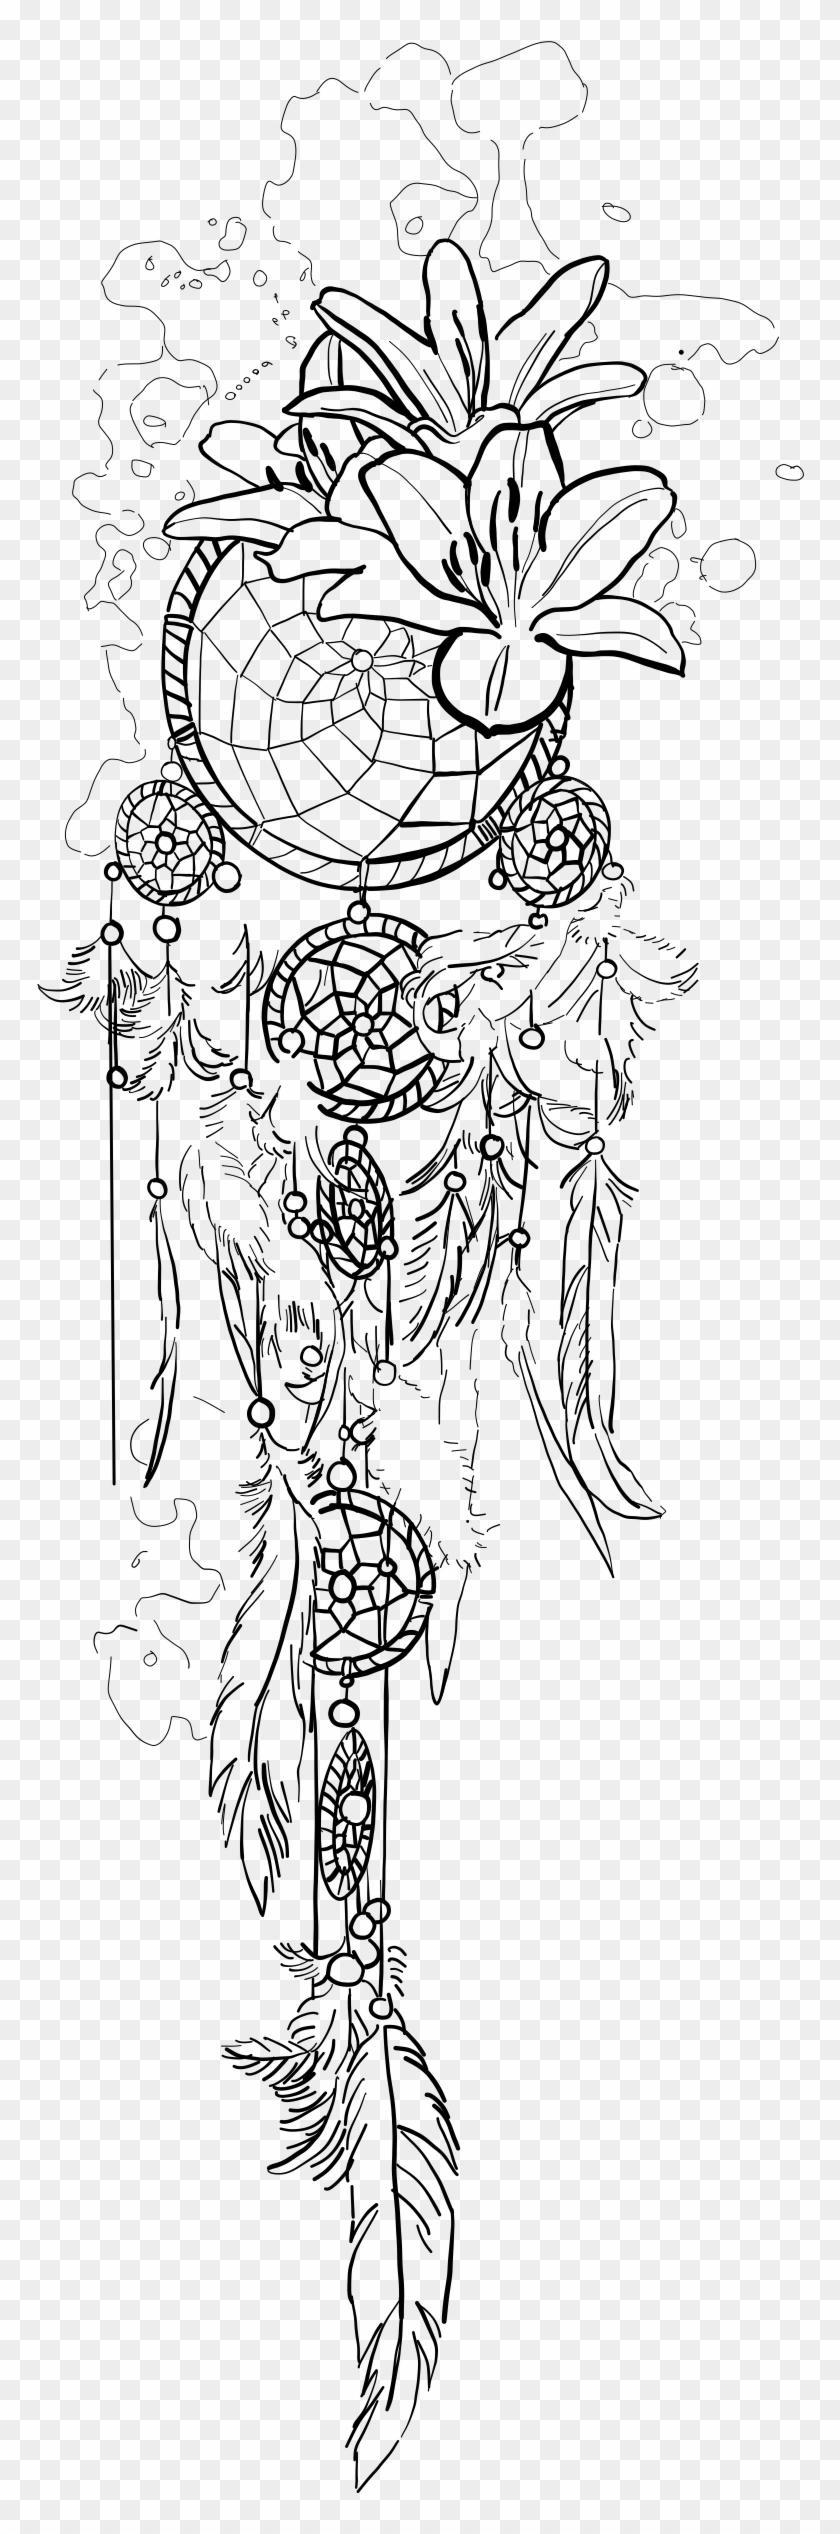 e5670f91360a0 Picture Download Hard Drawing Dream Catcher - Dream Catcher Spine Tattoo,  HD Png Download